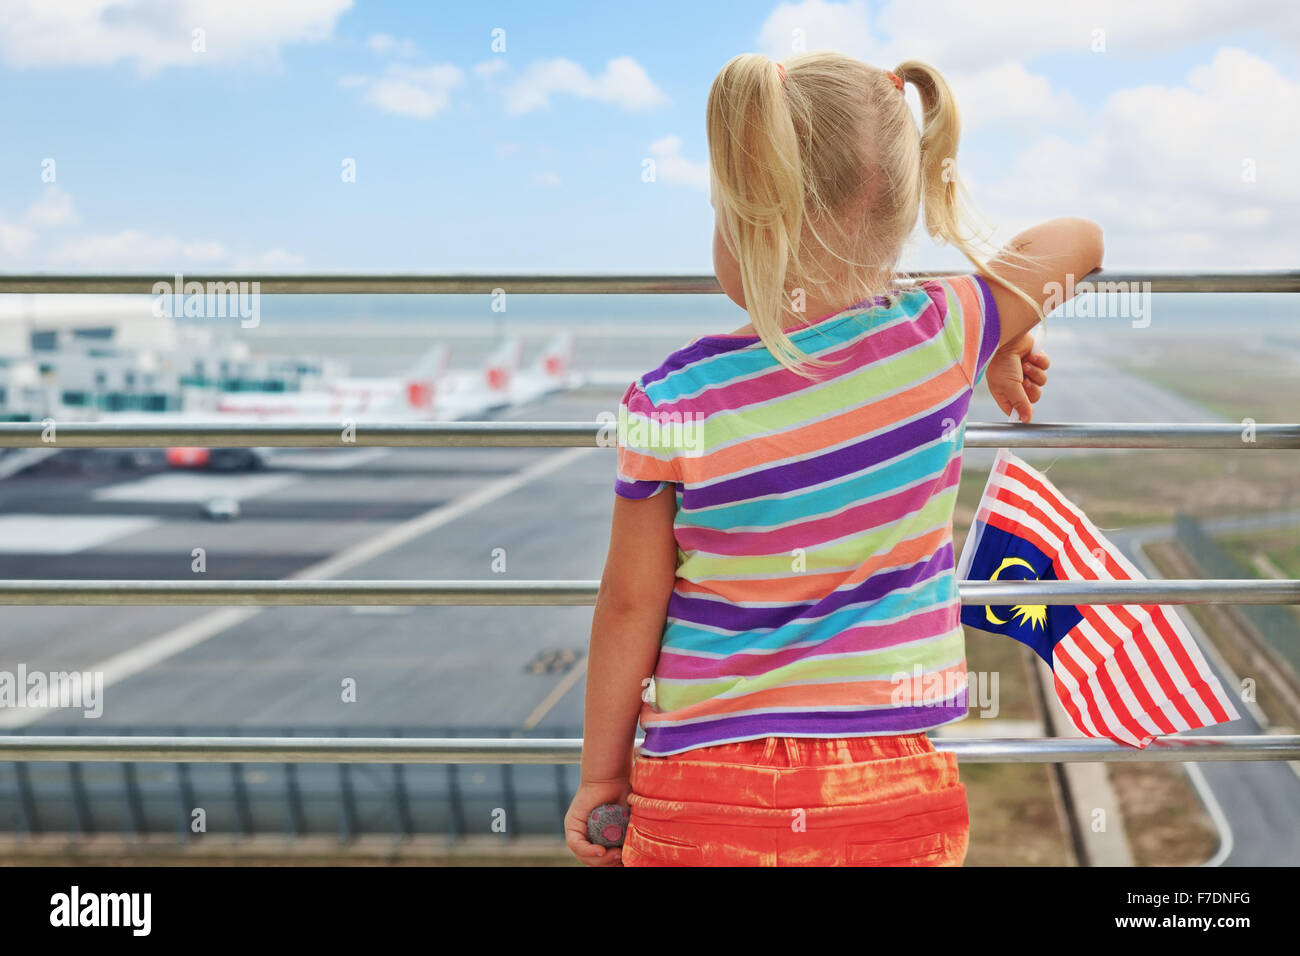 Little child waiting for boarding to flight in airport transit hall and looking at airplanes near departure gates - Stock Image